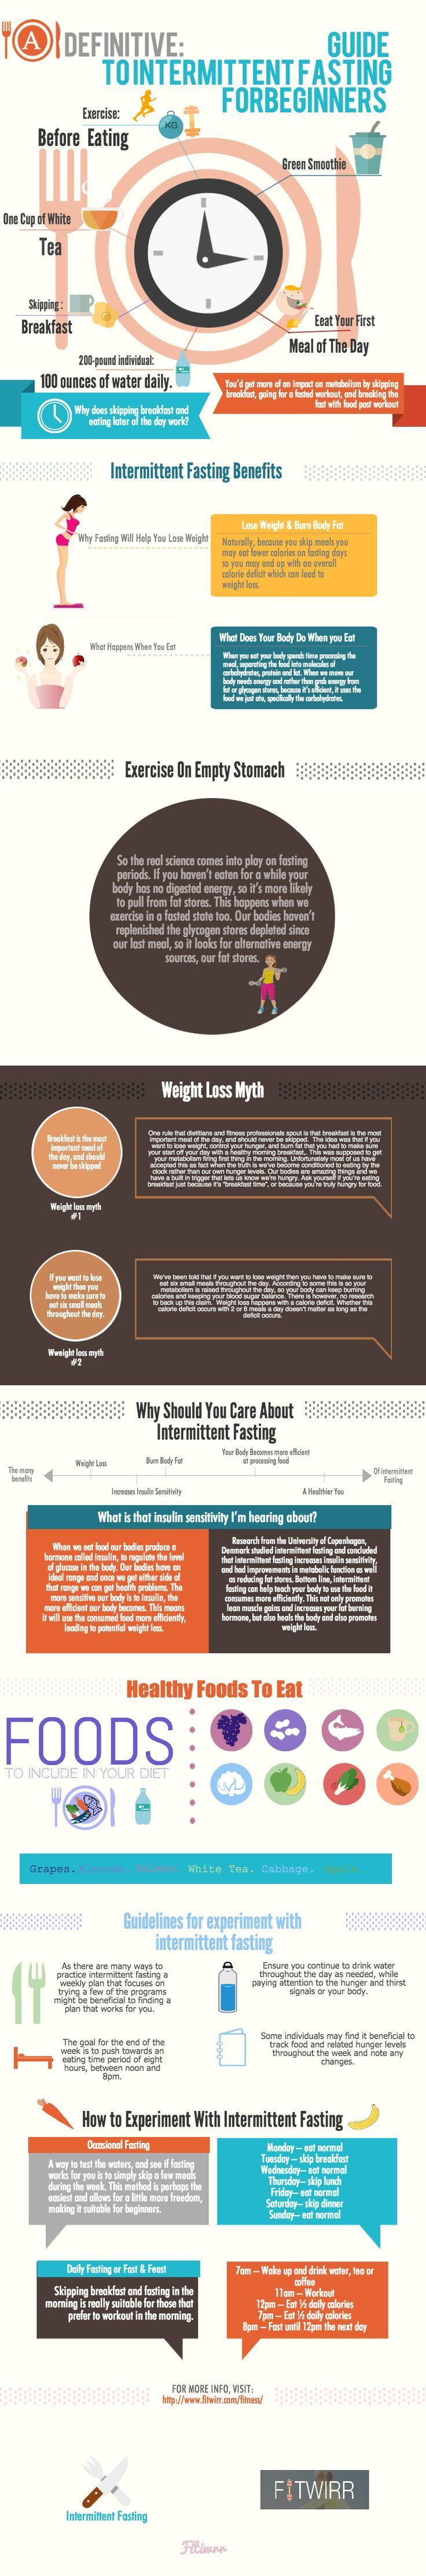 See more here ► https://www.youtube.com/watch?v=3qKhPjyBqW0 Tags: helpful weight loss tips - A Definitive Guide to Intermittent Fasting For Beginners